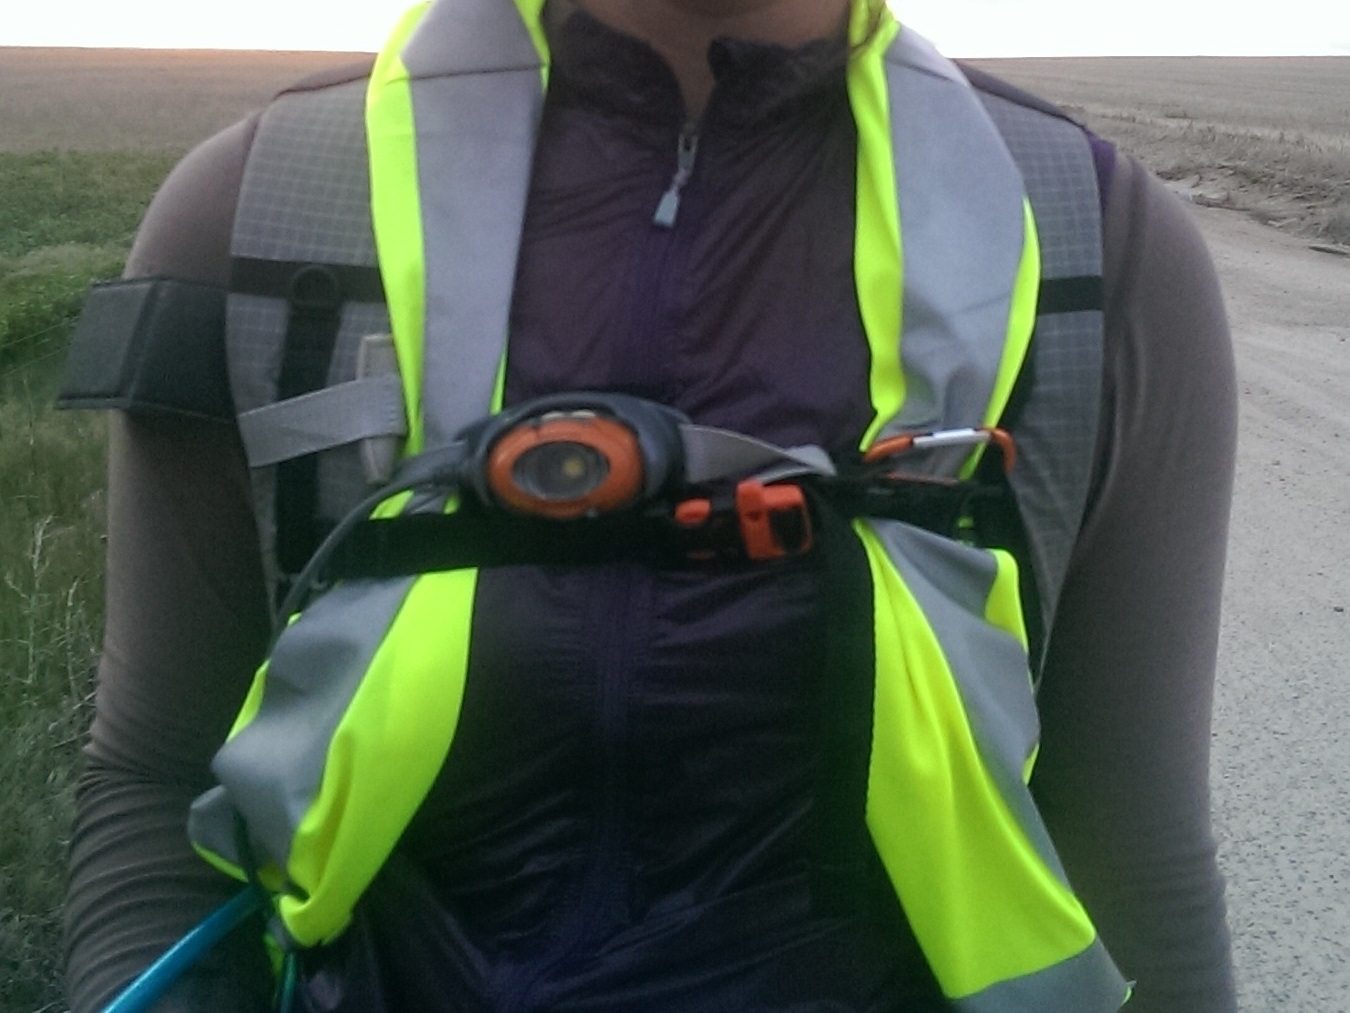 Safety Vest - Generic from Hardwear StoreRead why→